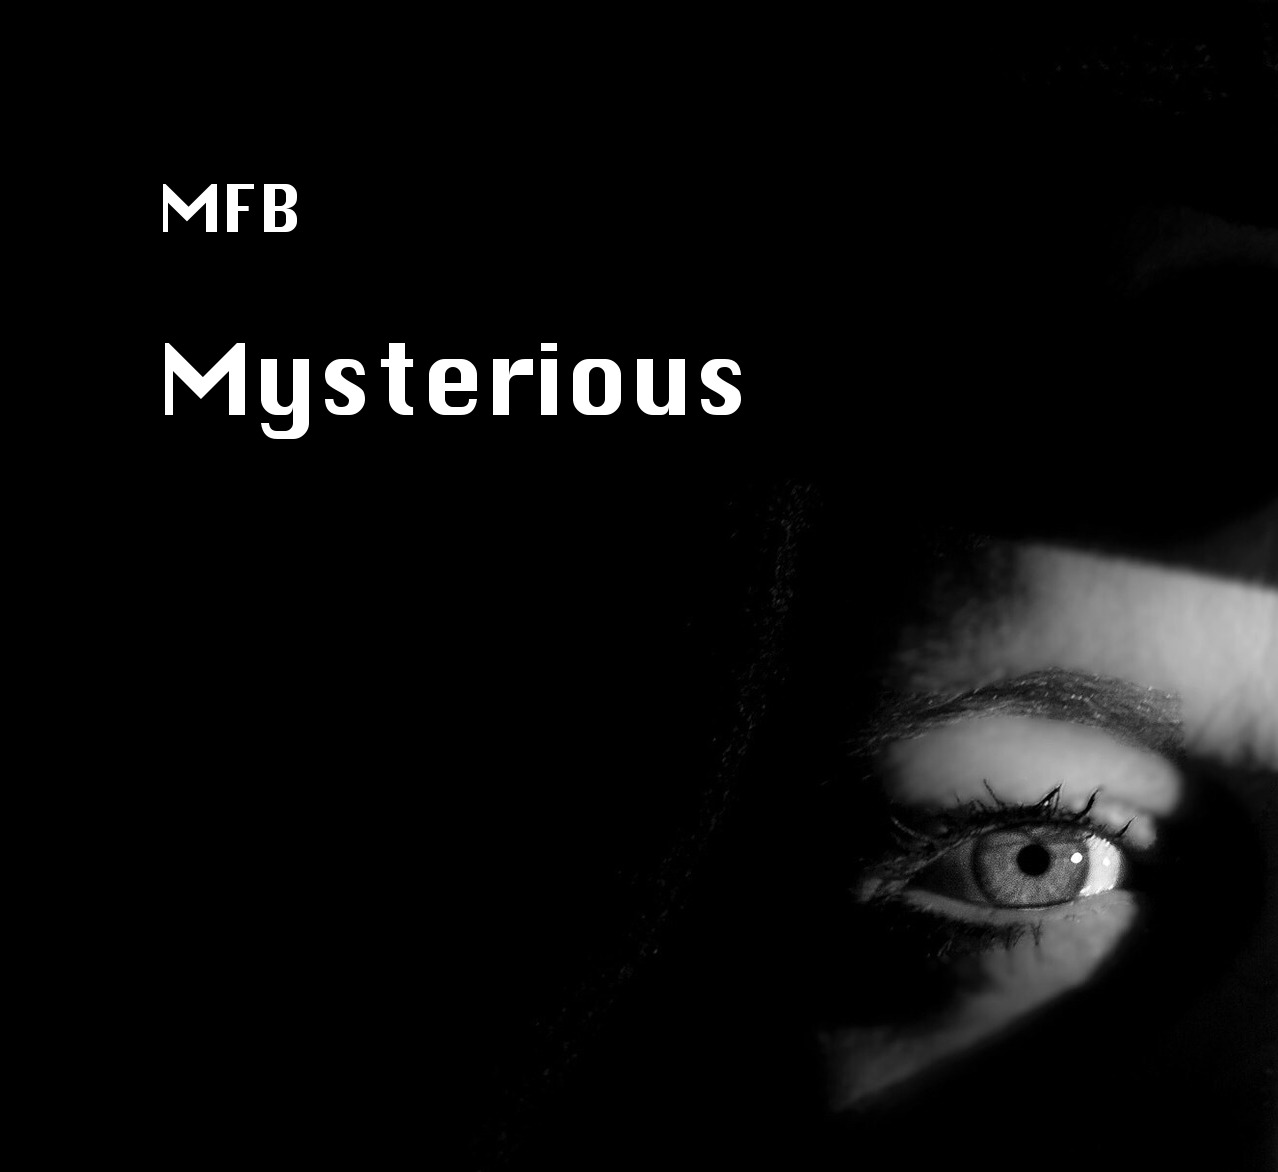 MFB - Mysterious